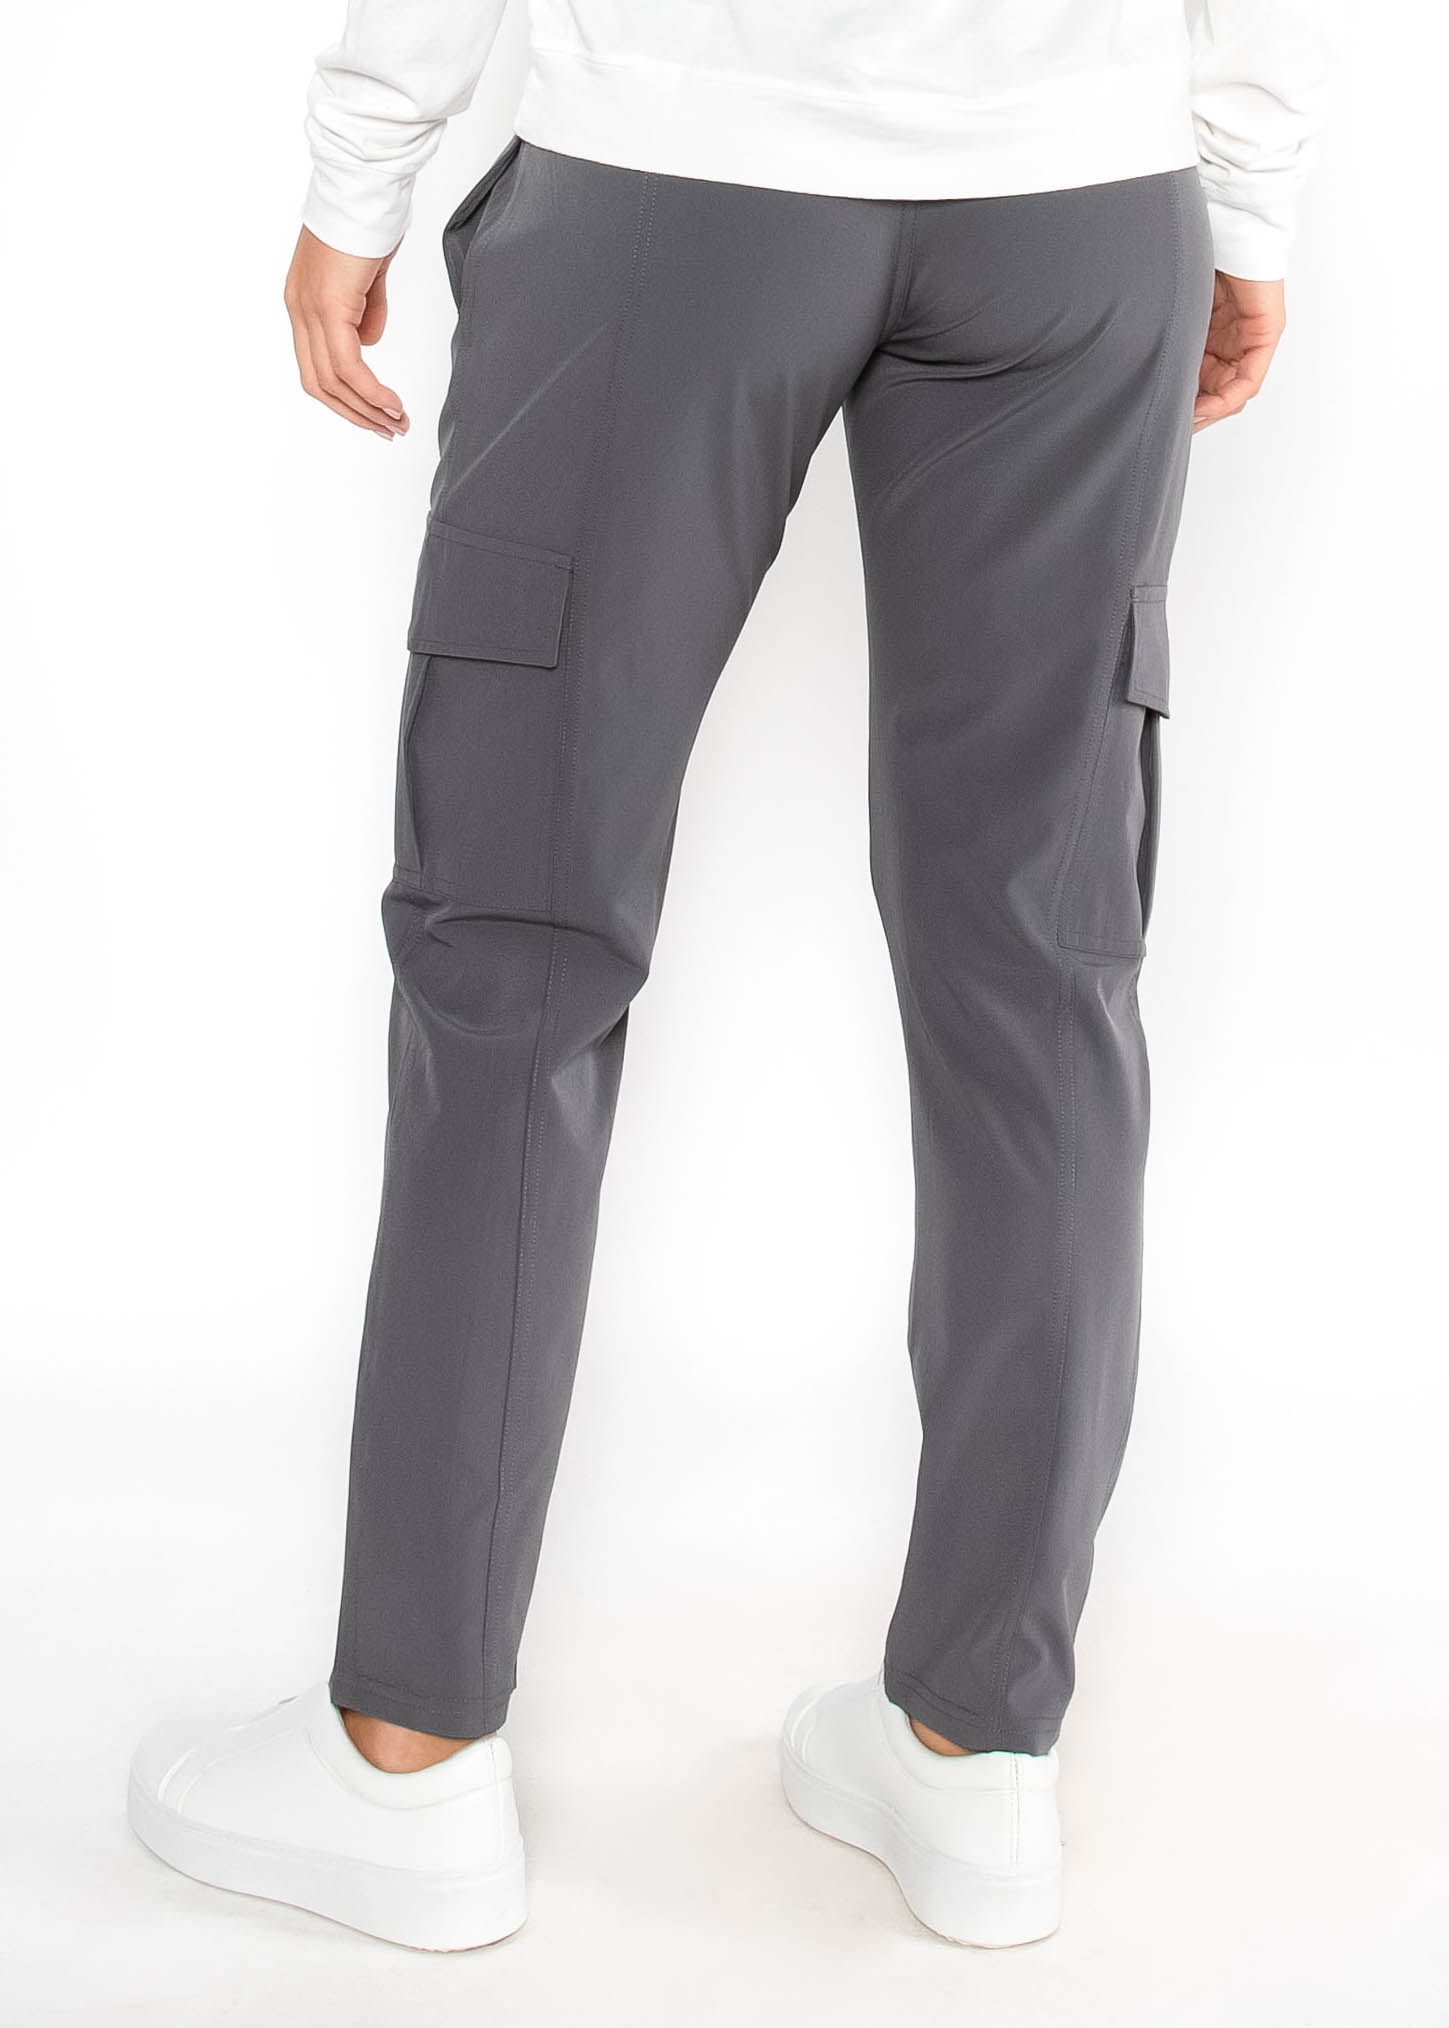 PLAY ALL DAY JOGGERS - GREY